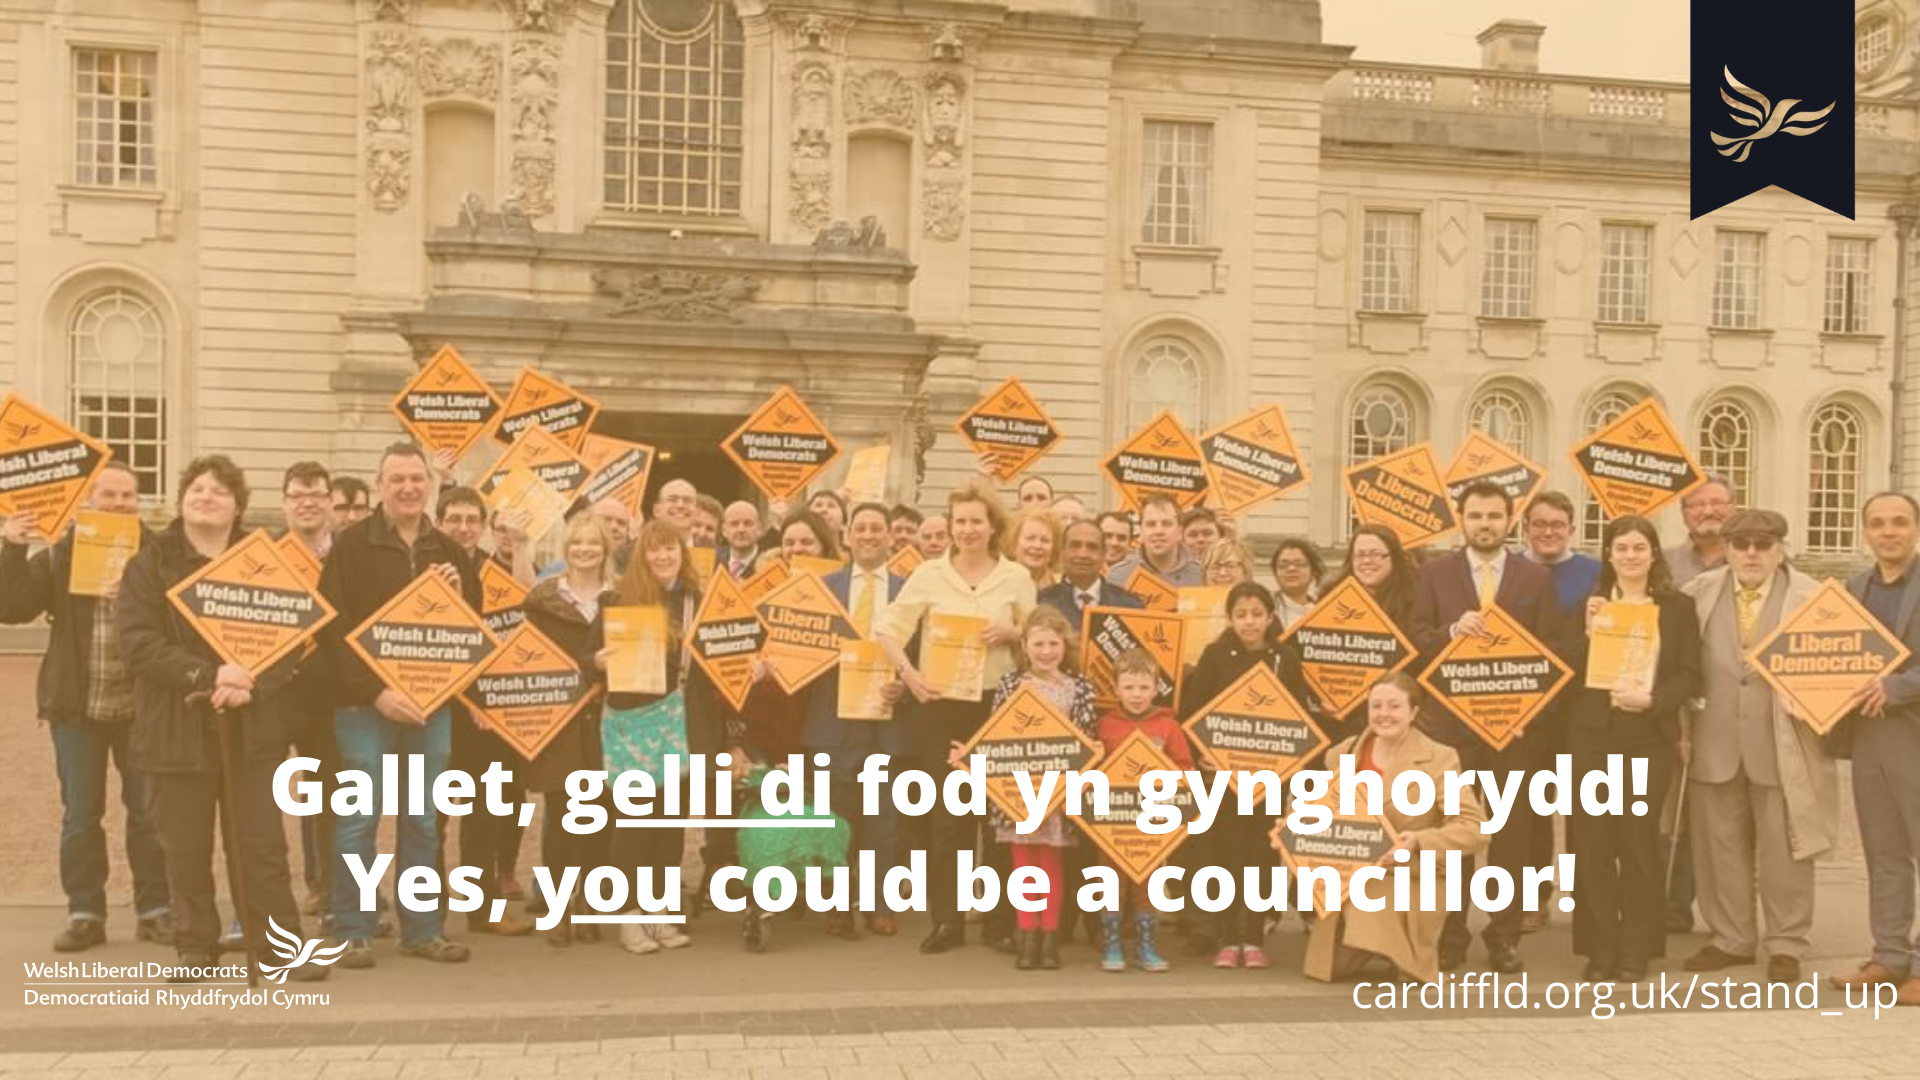 Yes, you could be a councillor!